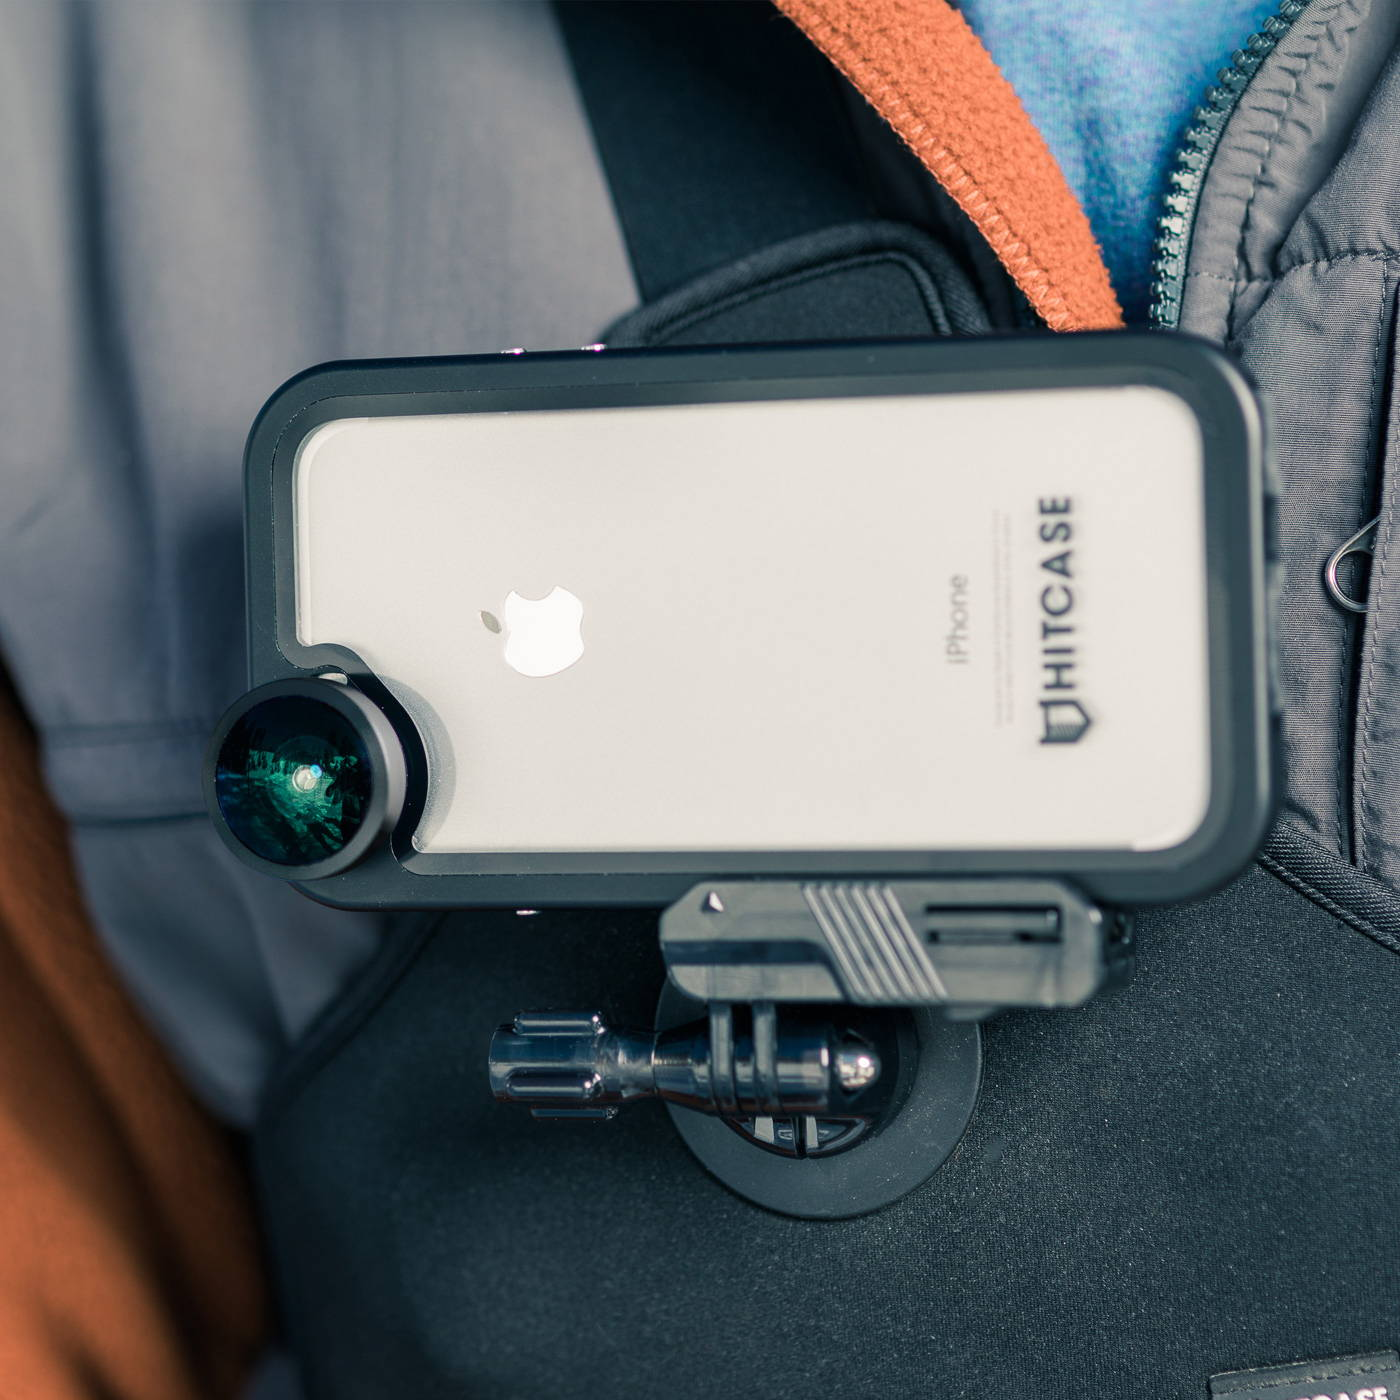 hitcase pro waterproof iphone case on chestr chest mount